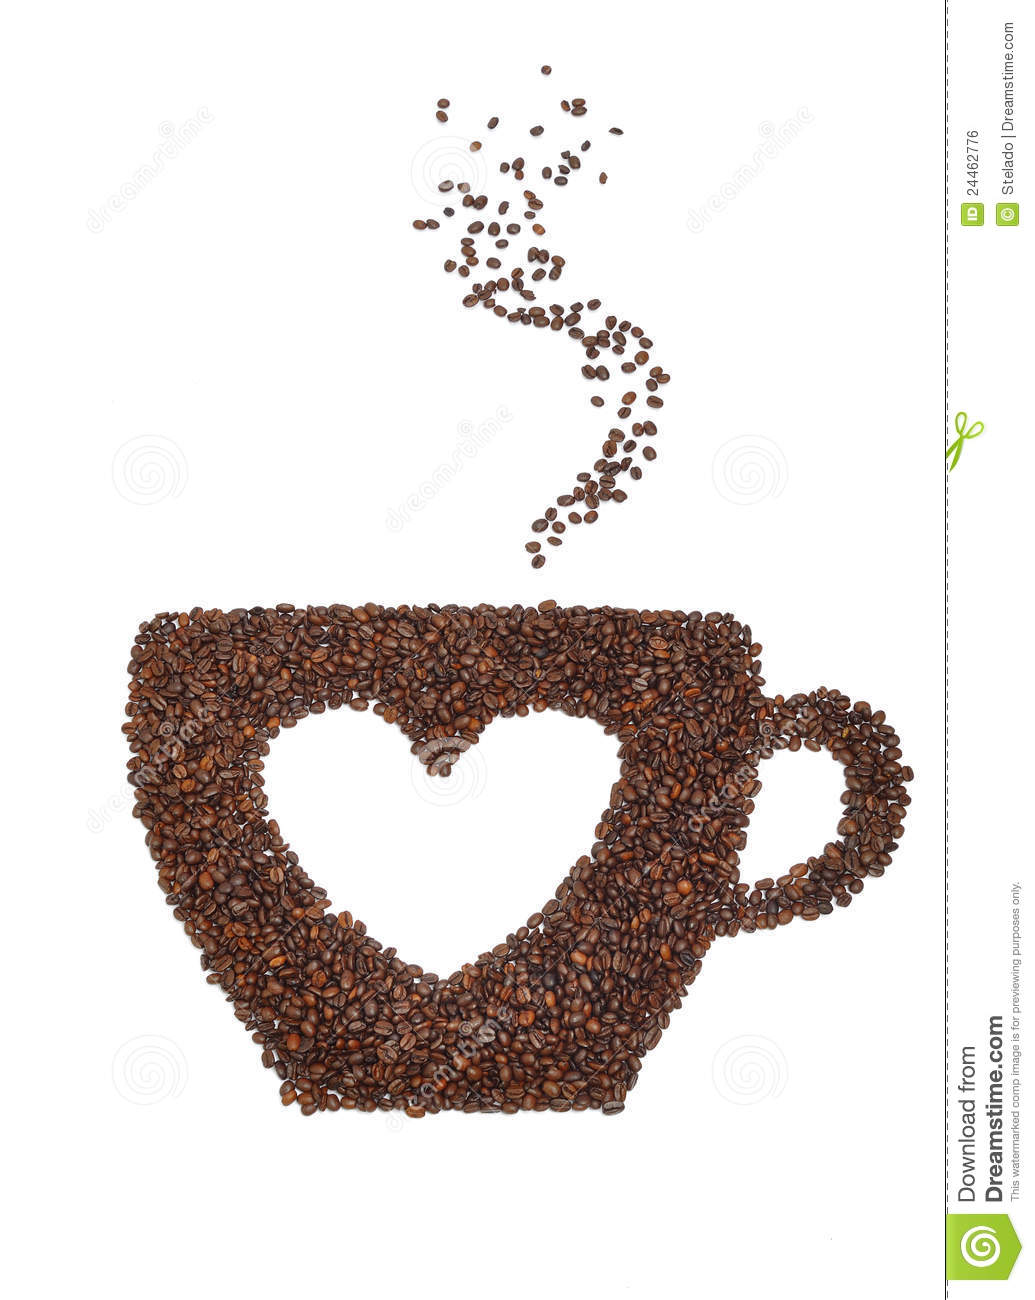 Cup coffee made from coffee beans with a heart symbol isolated on ...